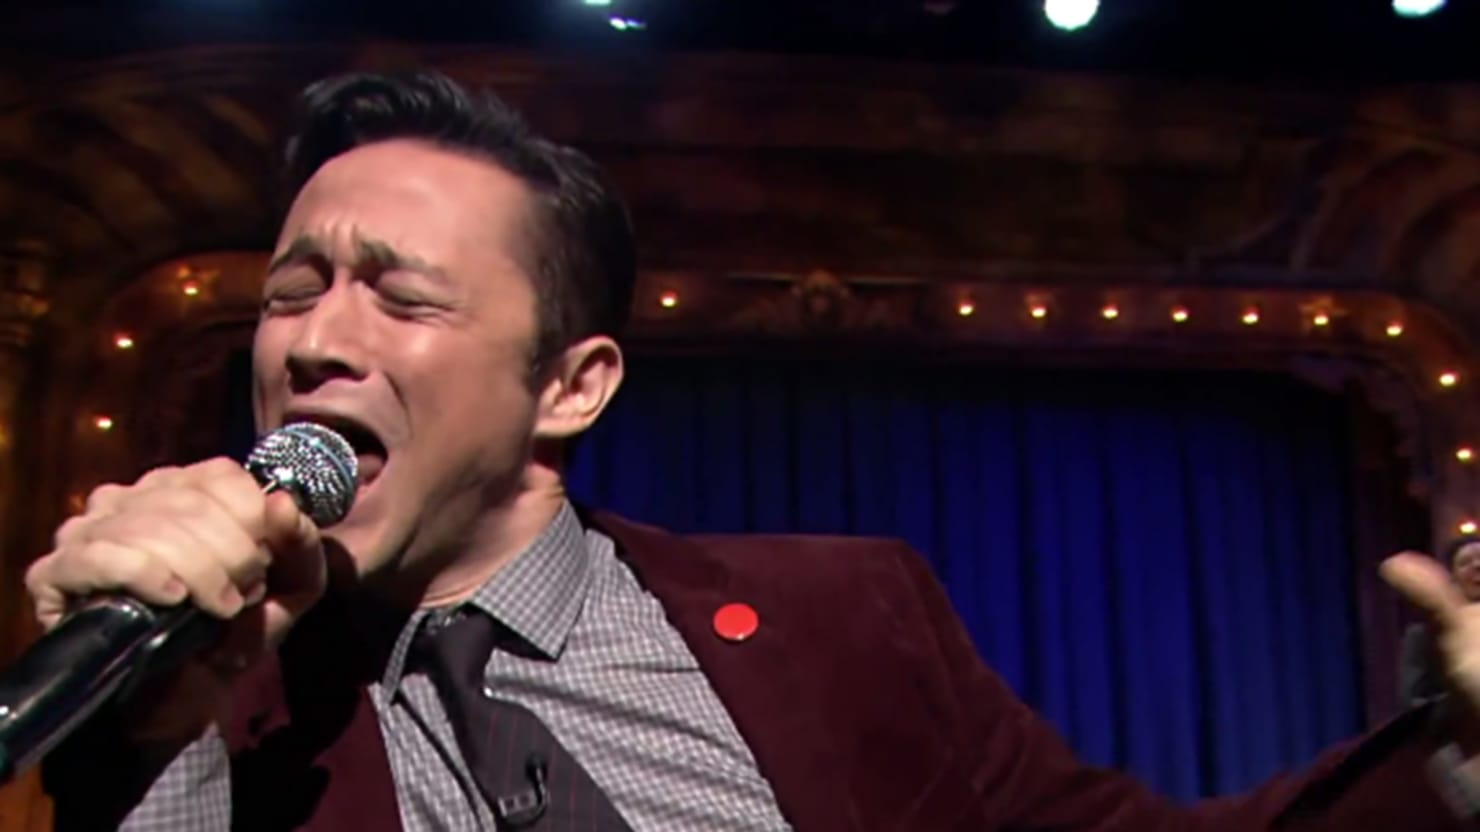 Joseph Gordon-Levitt's 9 Best Musical Performances: Jimmy Fallon, Lady Gaga, More